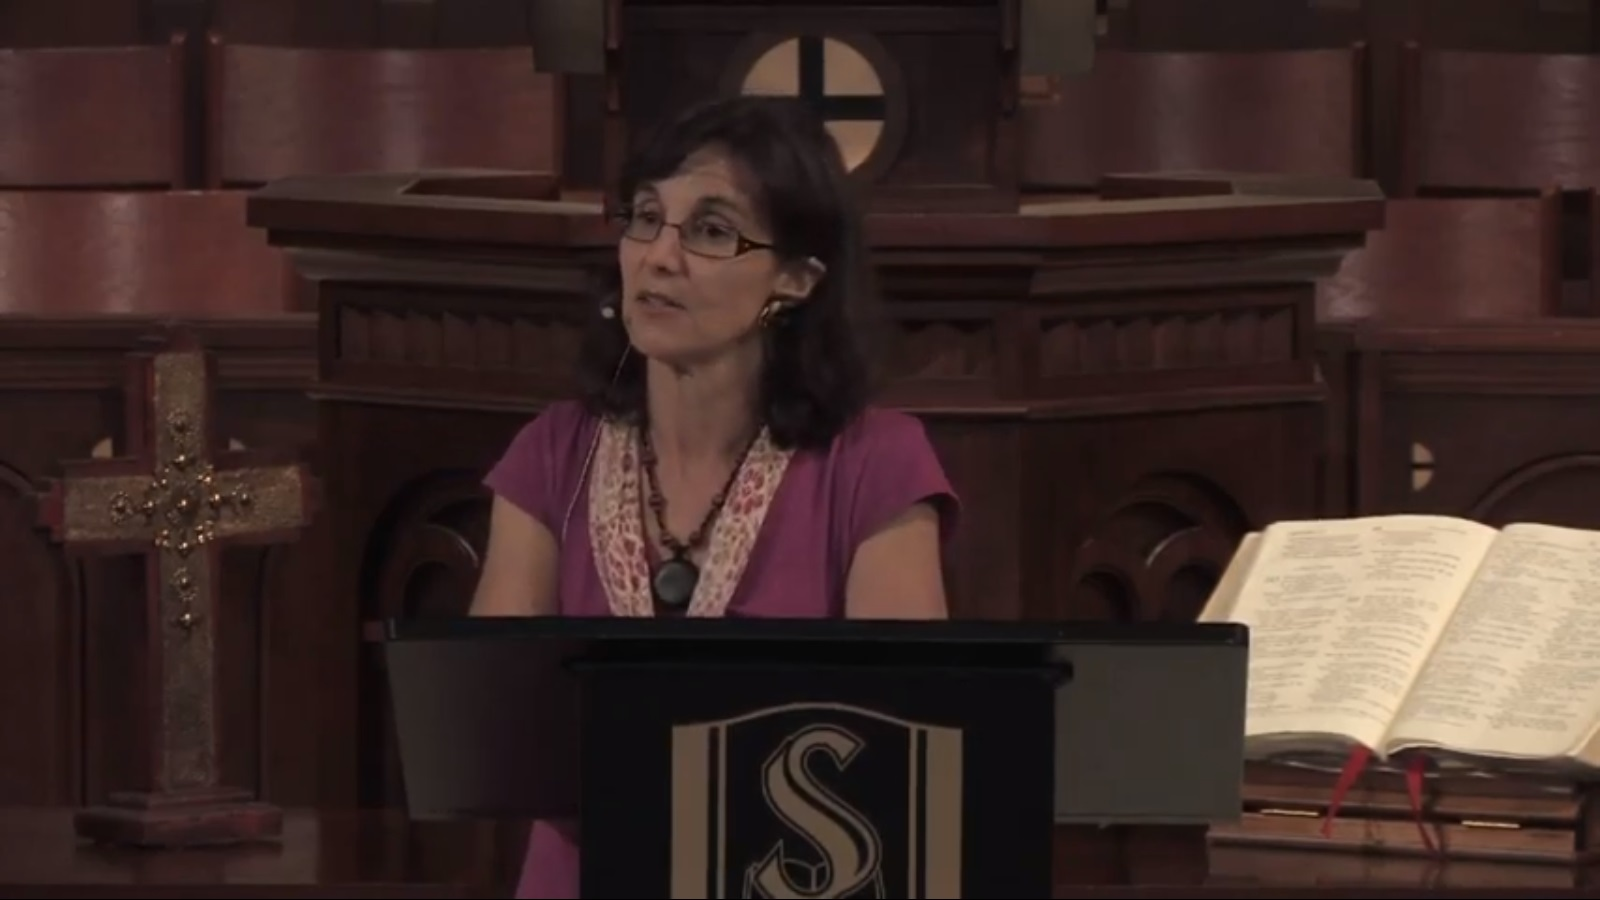 Rosaria Butterfield thanked God for cancelling Pride parades with Coronavirus